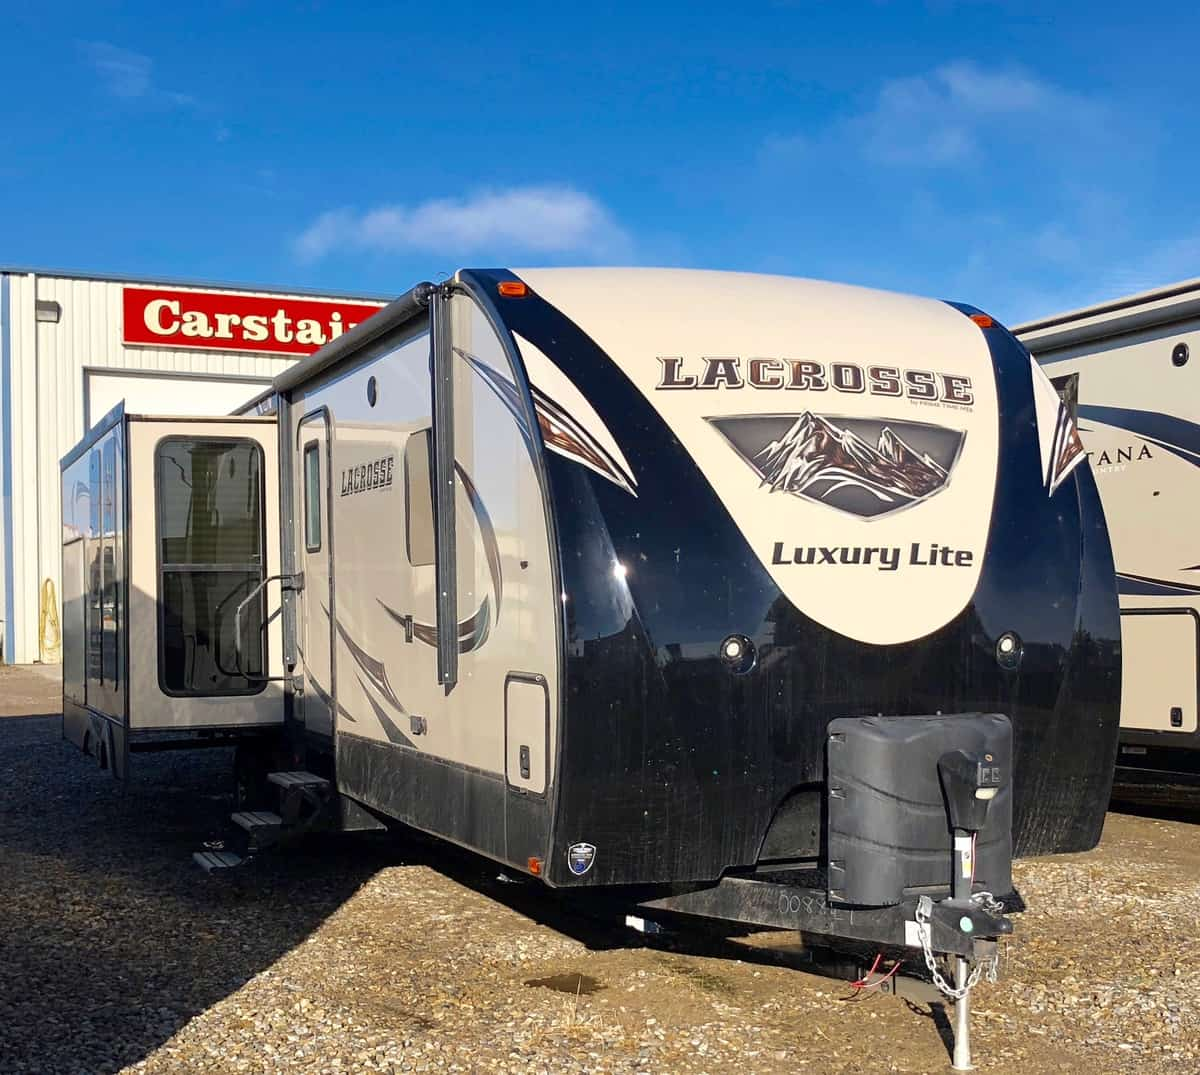 USED 2018 Prime Time LACROSSE 330RST